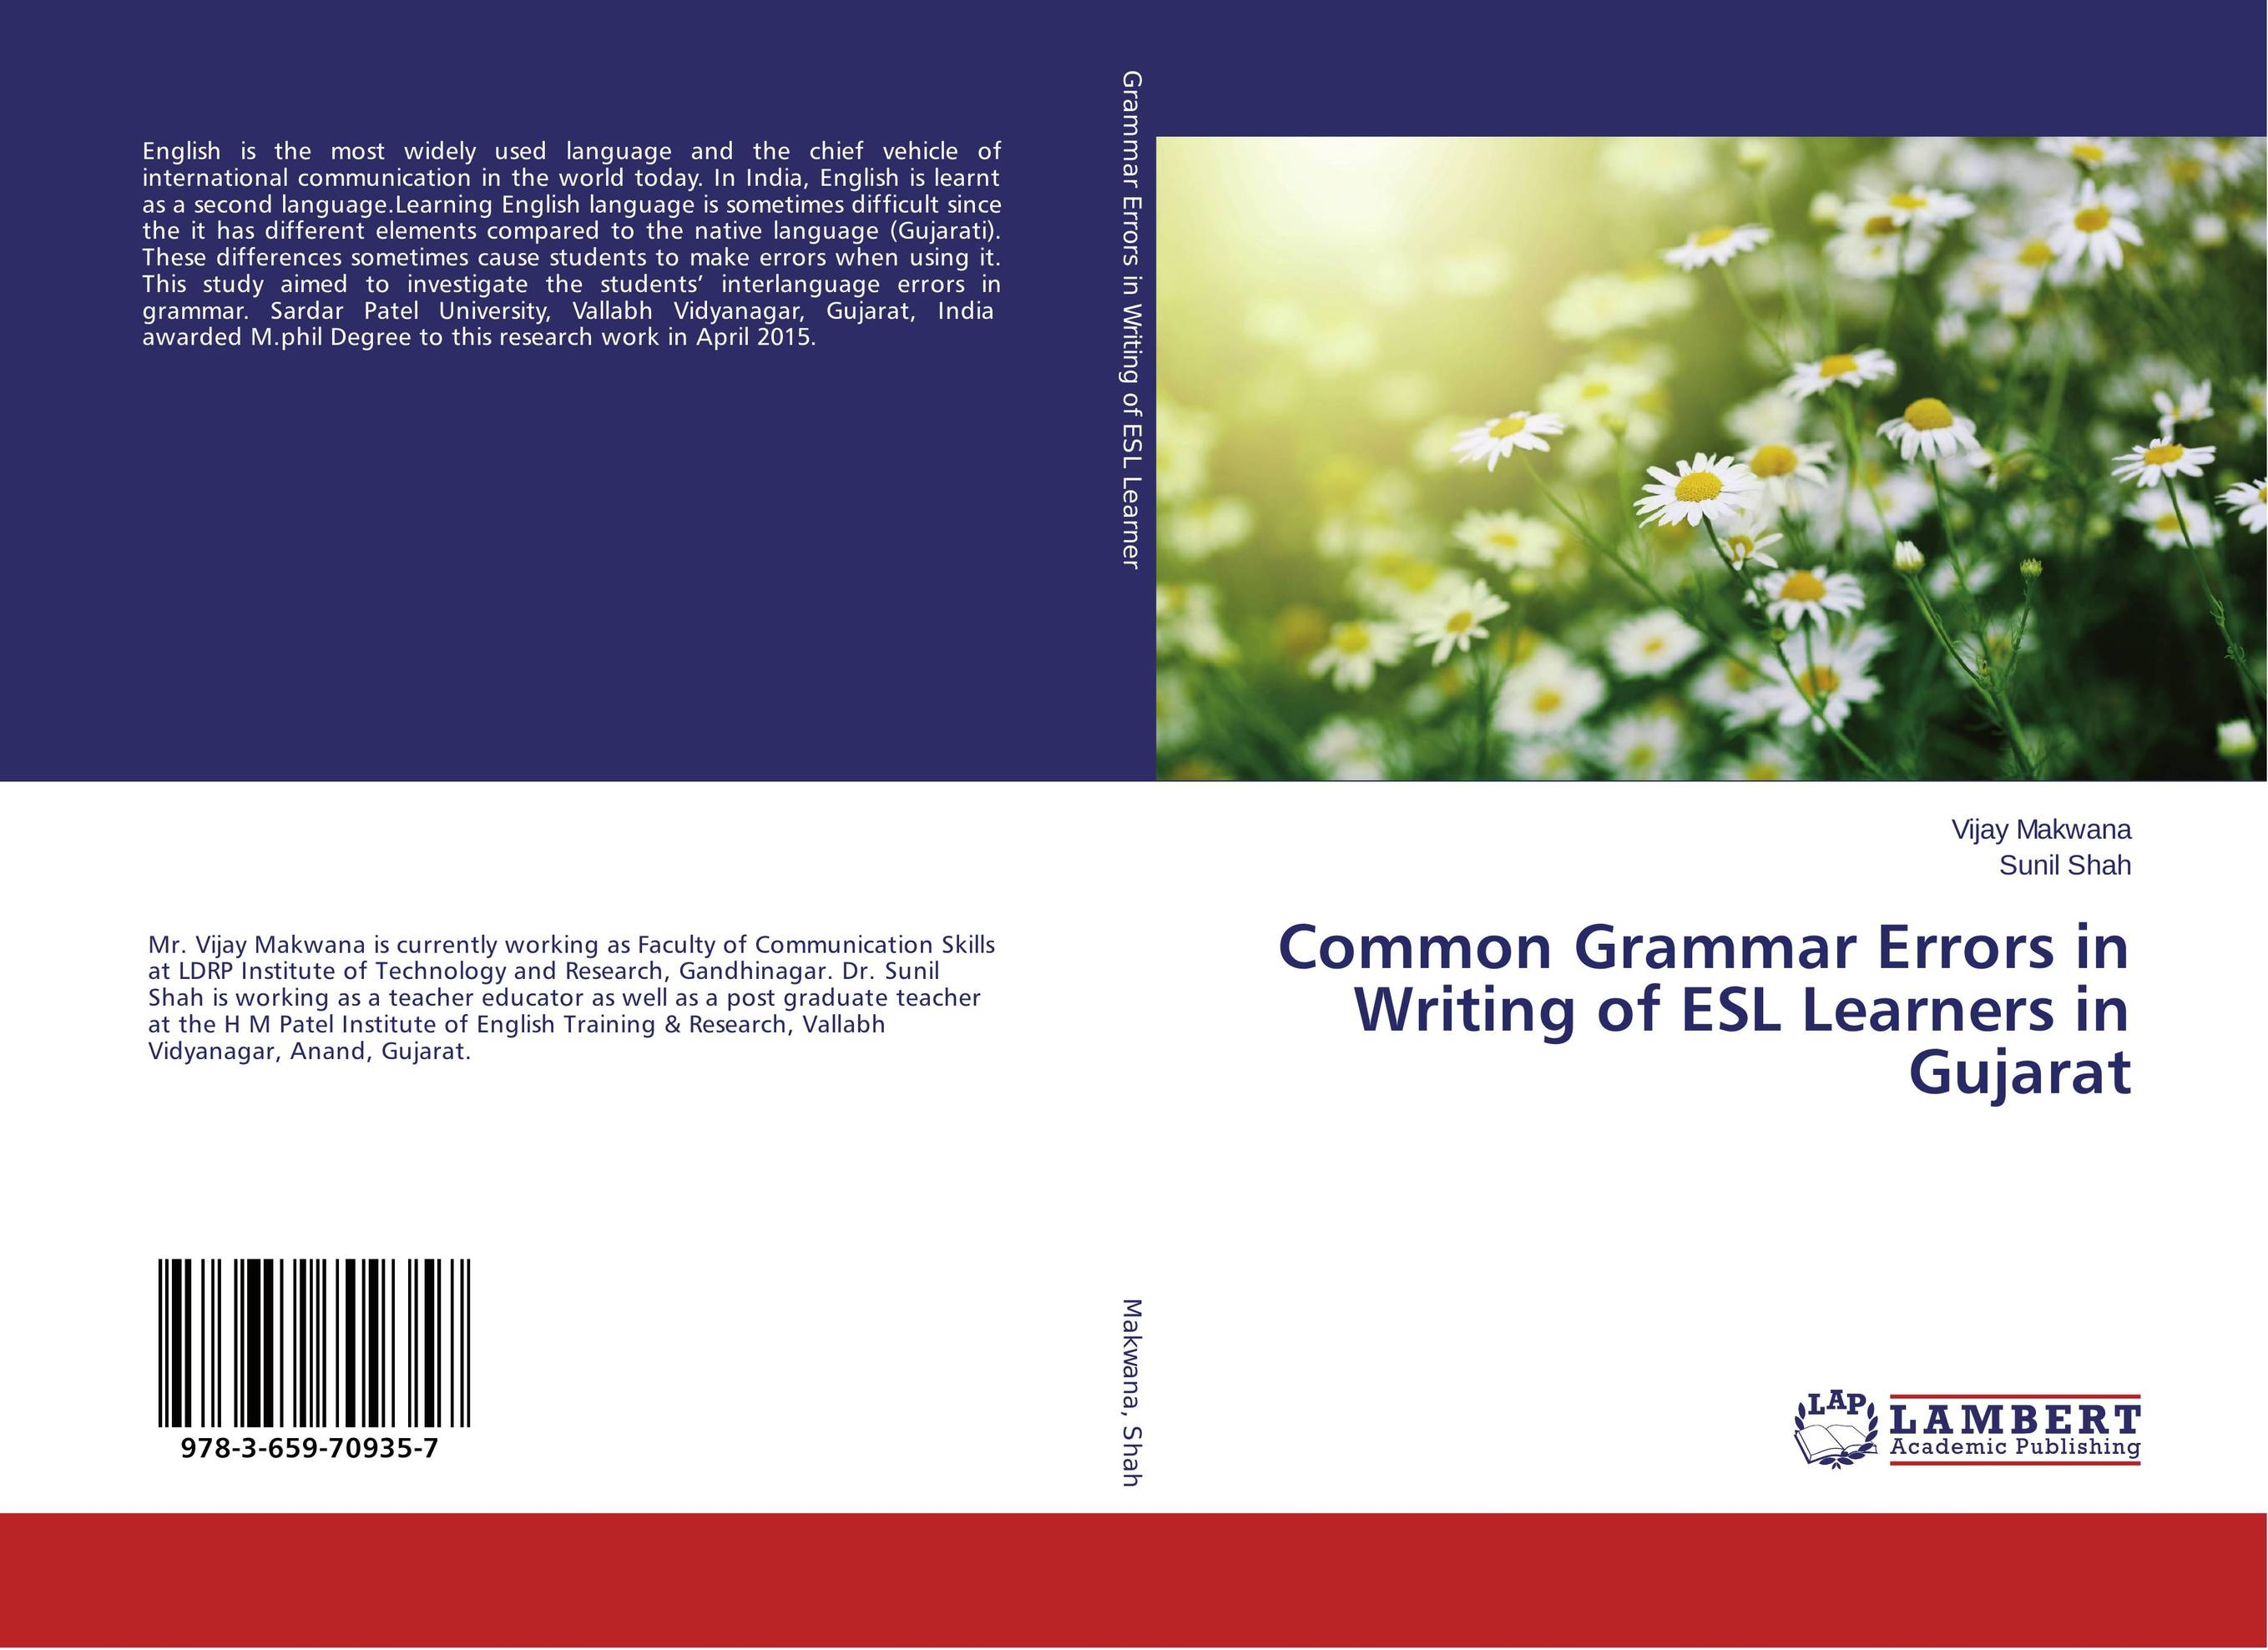 Common Grammar Errors in Writing of ESL Learners in Gujarat the comedy of errors